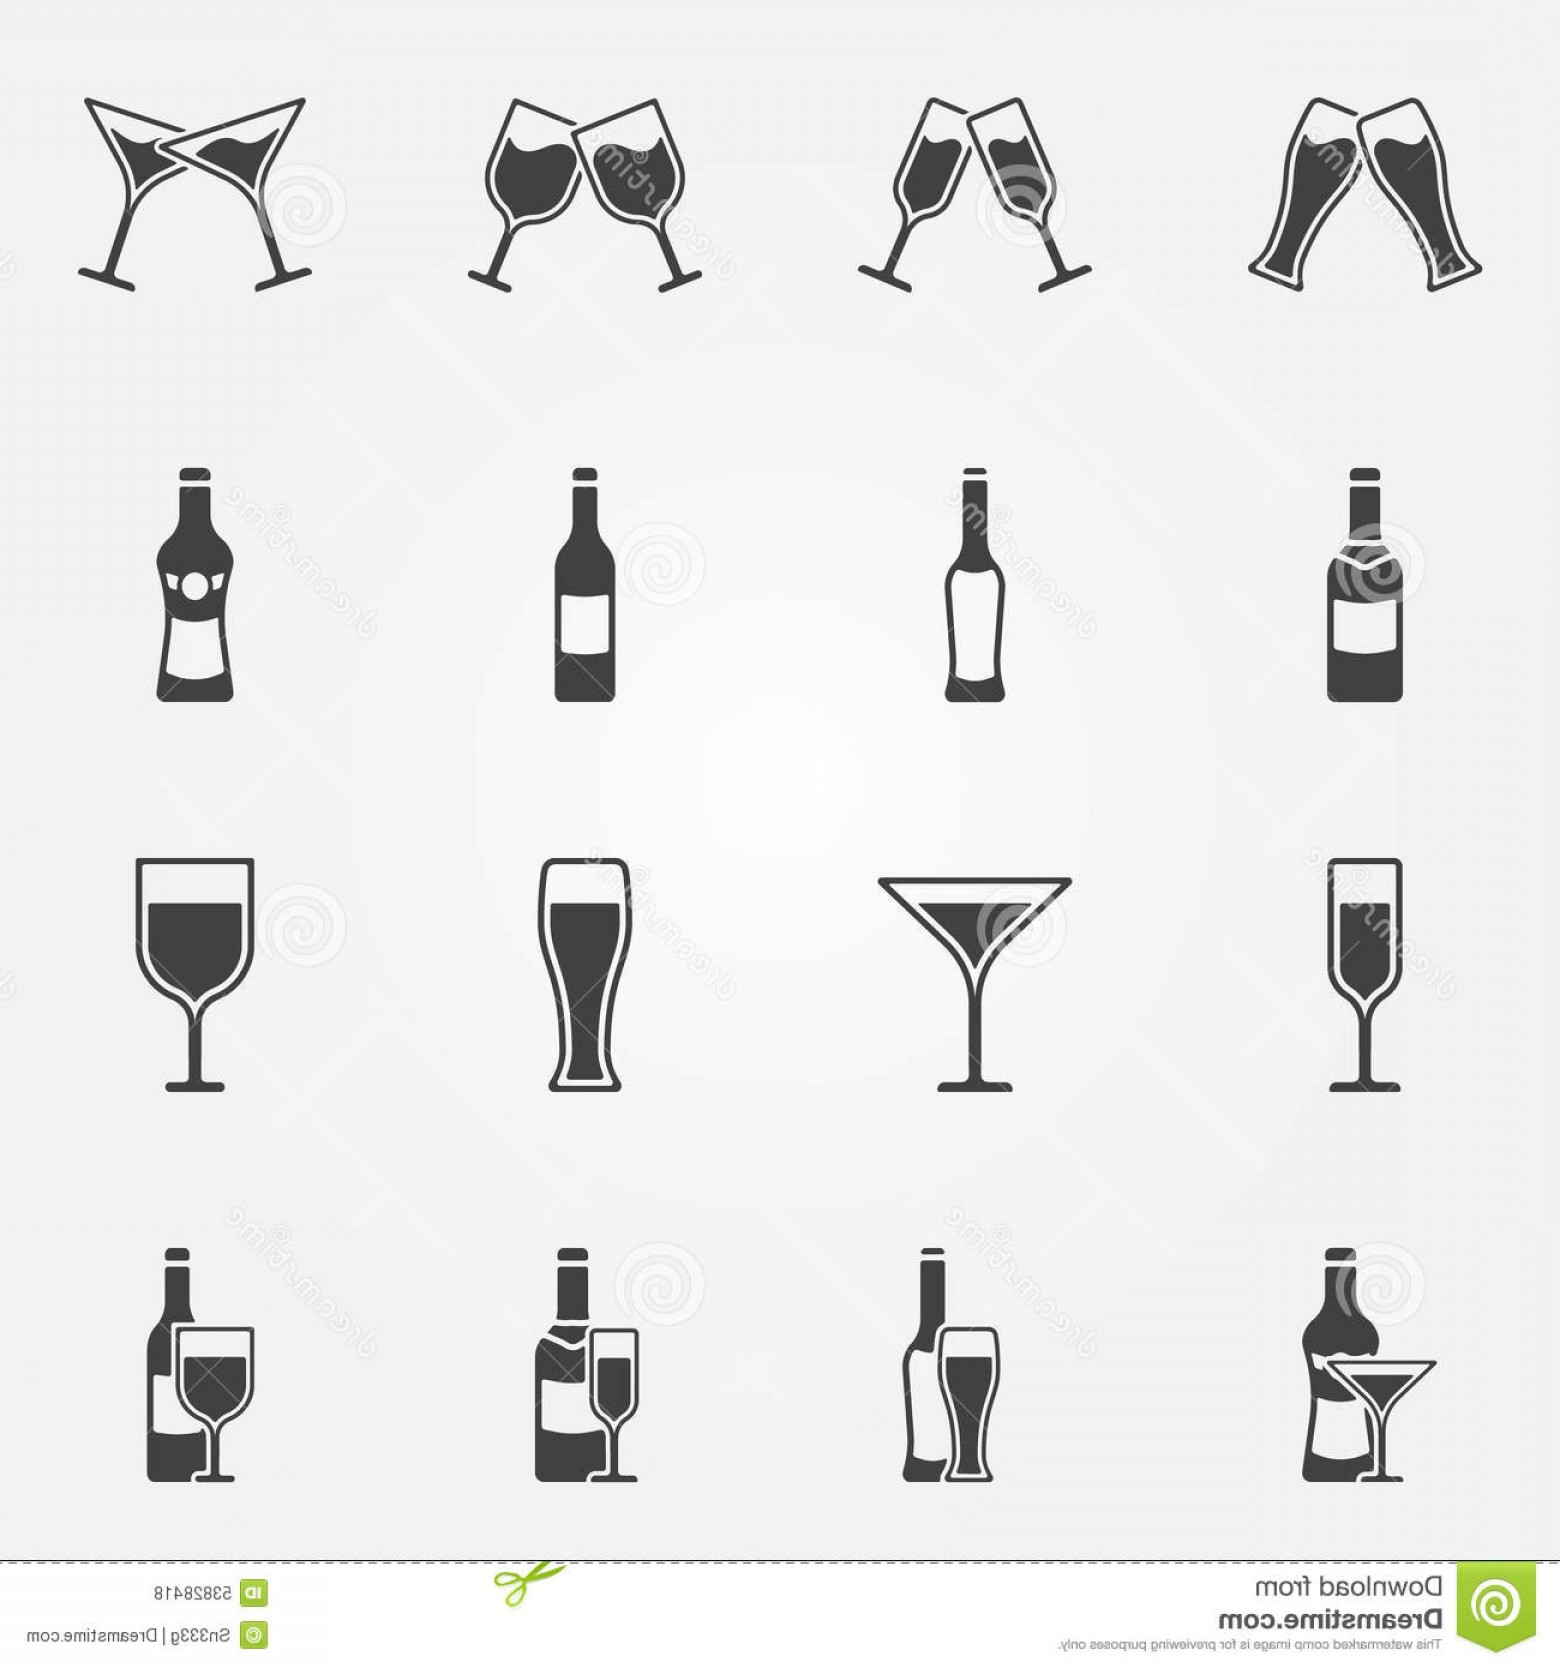 Alcohol Vector: Stock Illustration Drink Alcohol Vector Icons Beverage Black Set Beer Wine Martini Champagne Bar Symbols Image